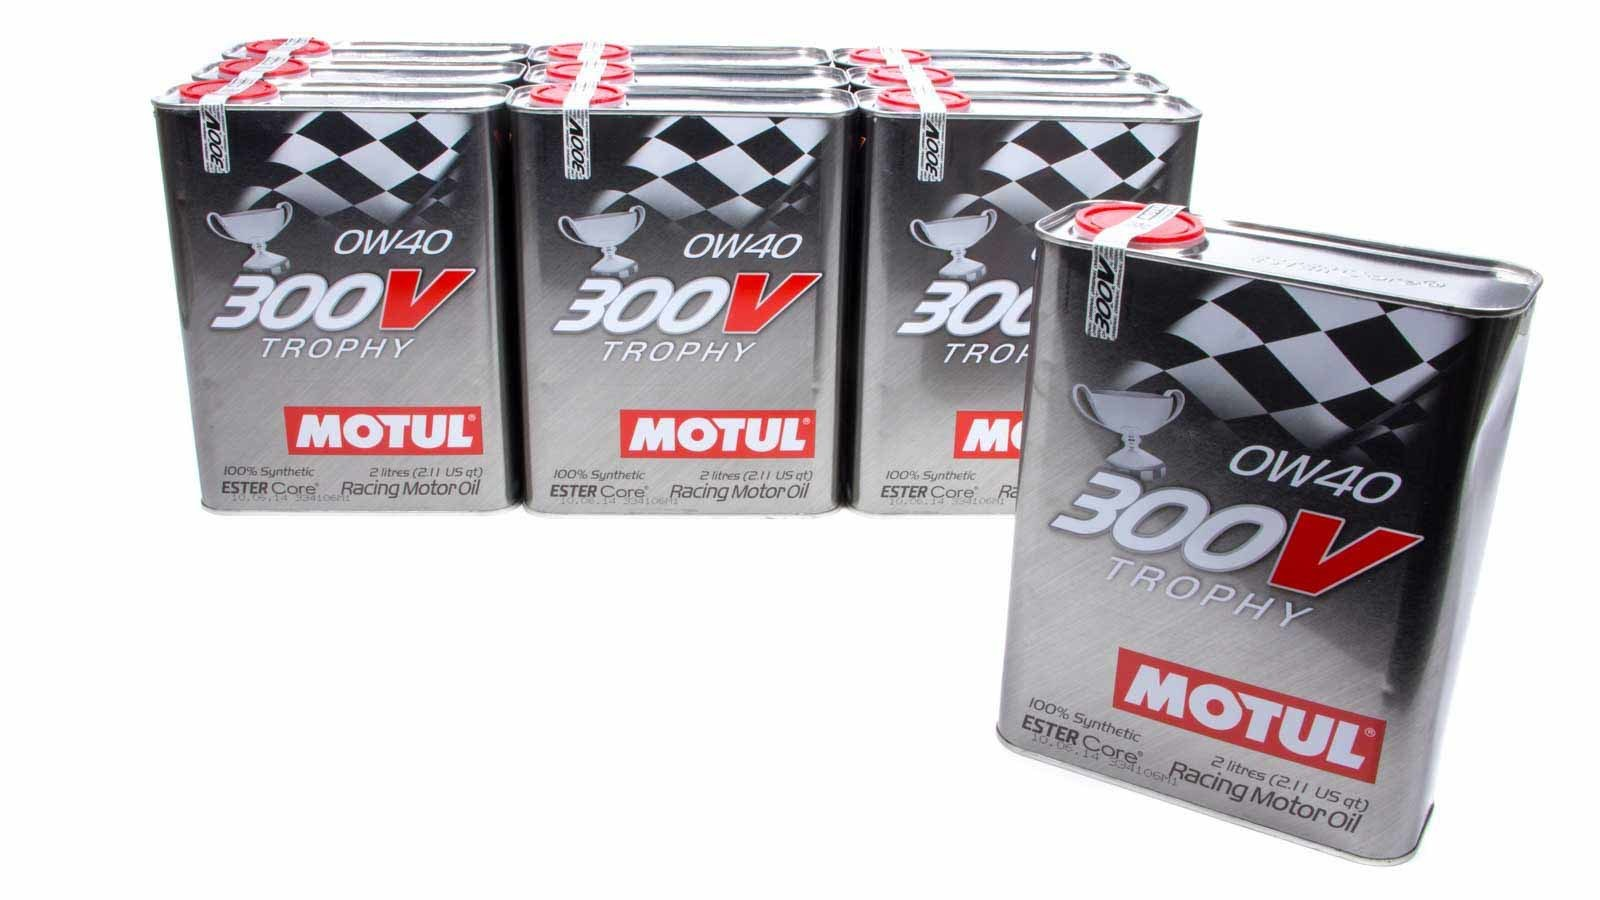 300V Trophy Oil 0w40 Case 10x2 Liter